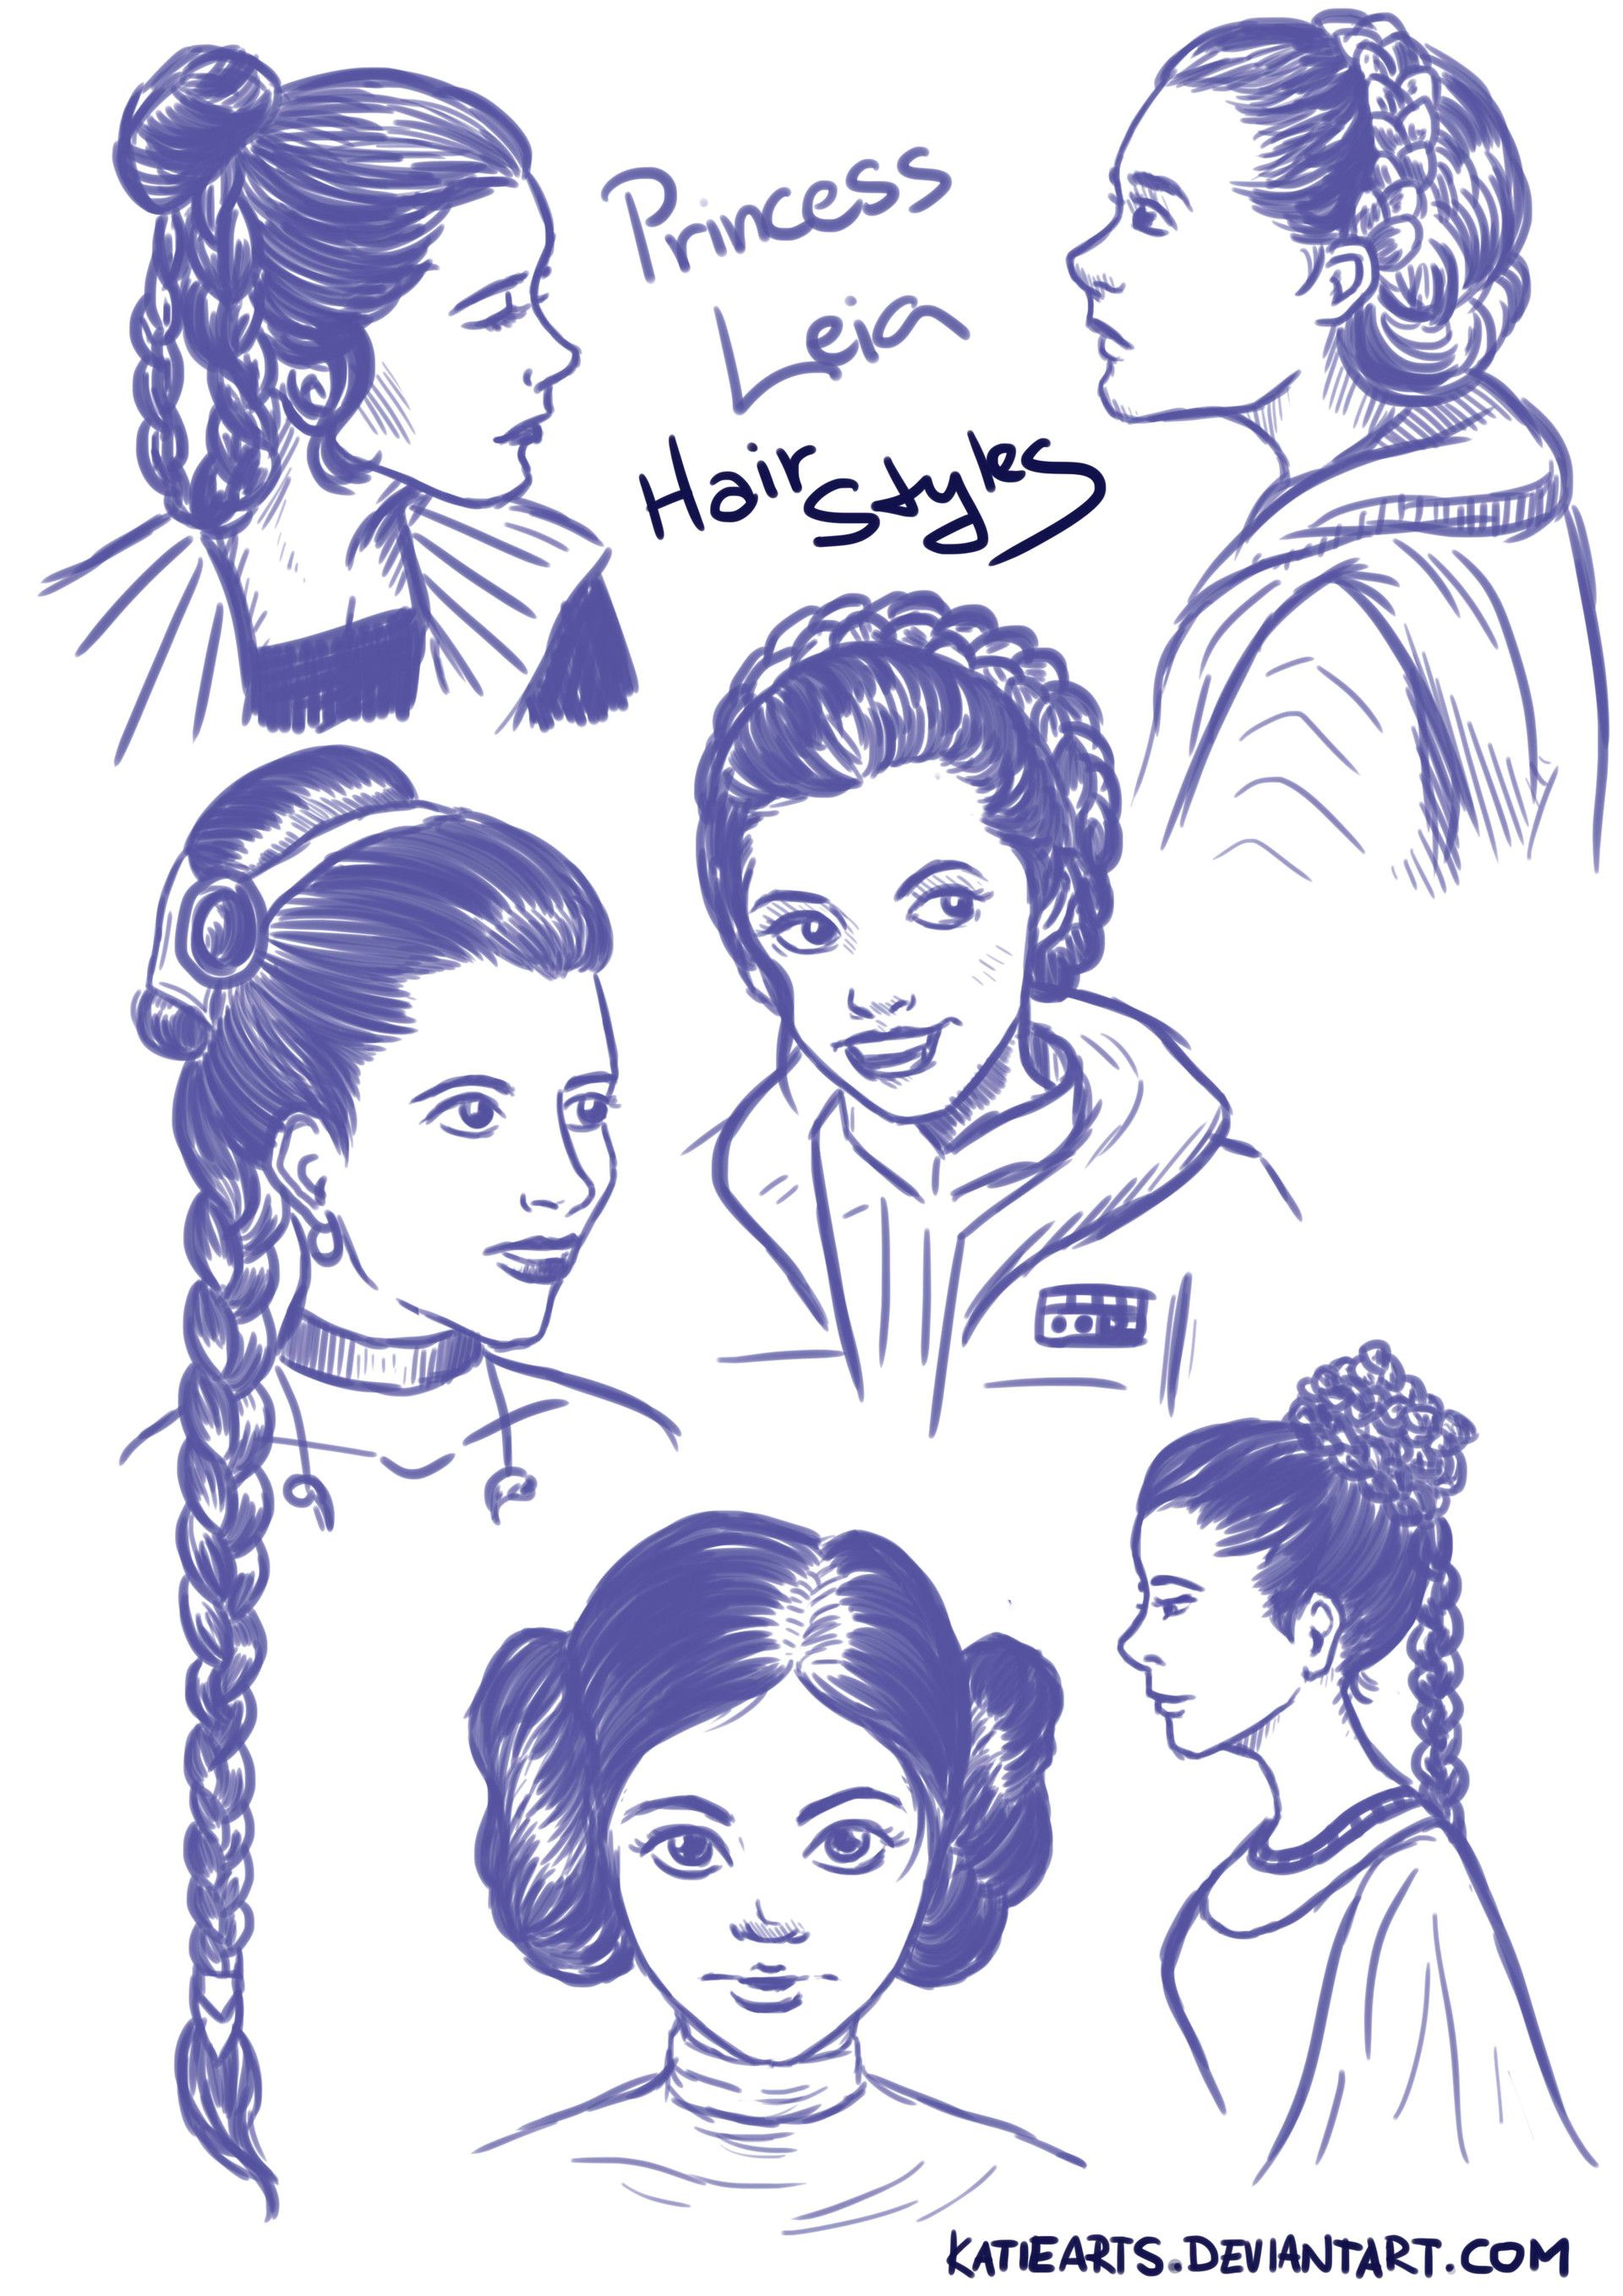 artstation - princess leia hairstyles